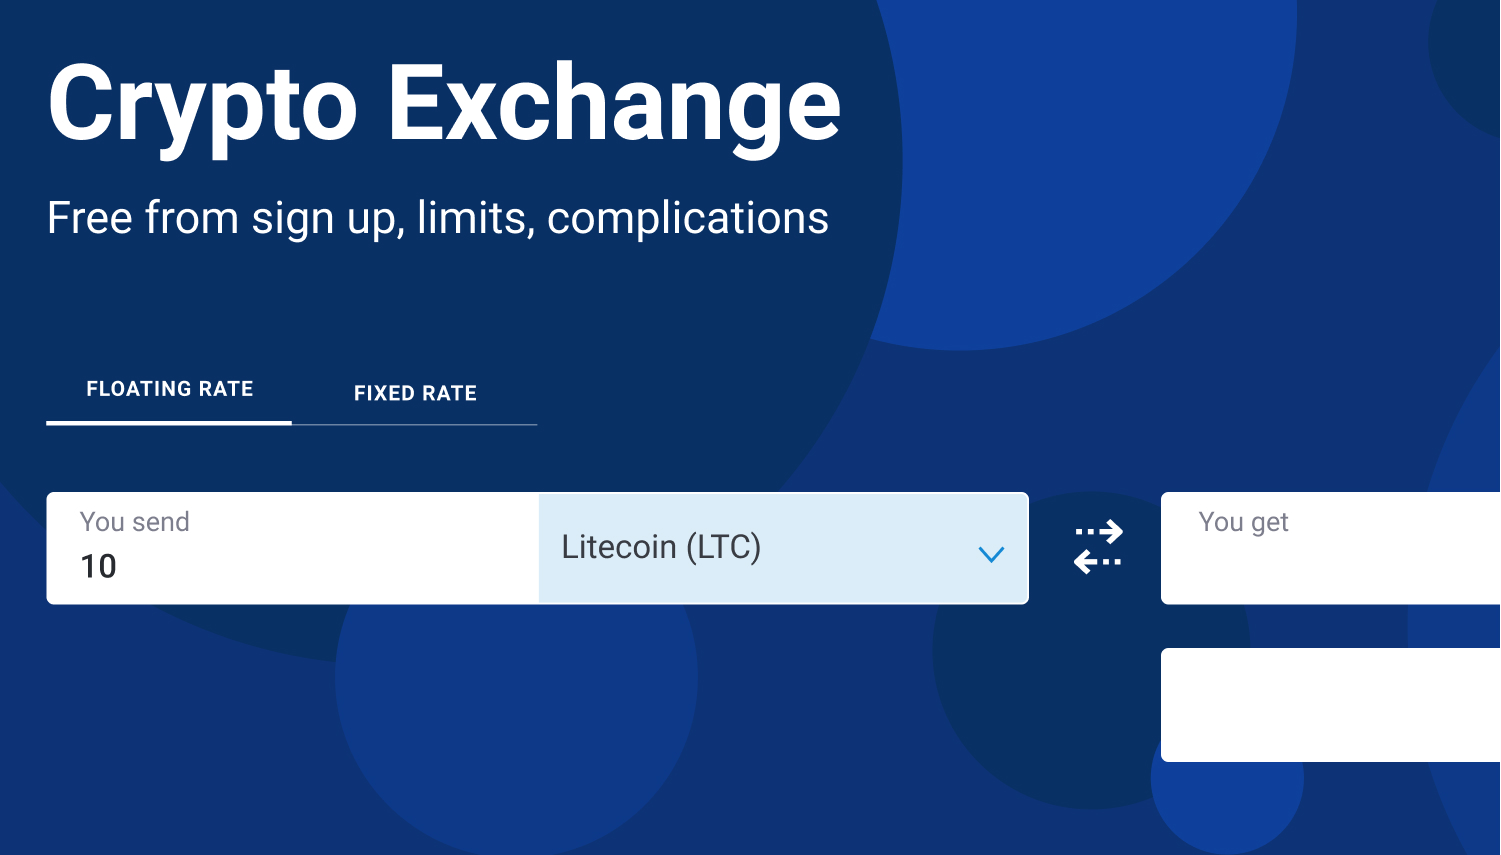 enter the amount of Litecoin to exchange